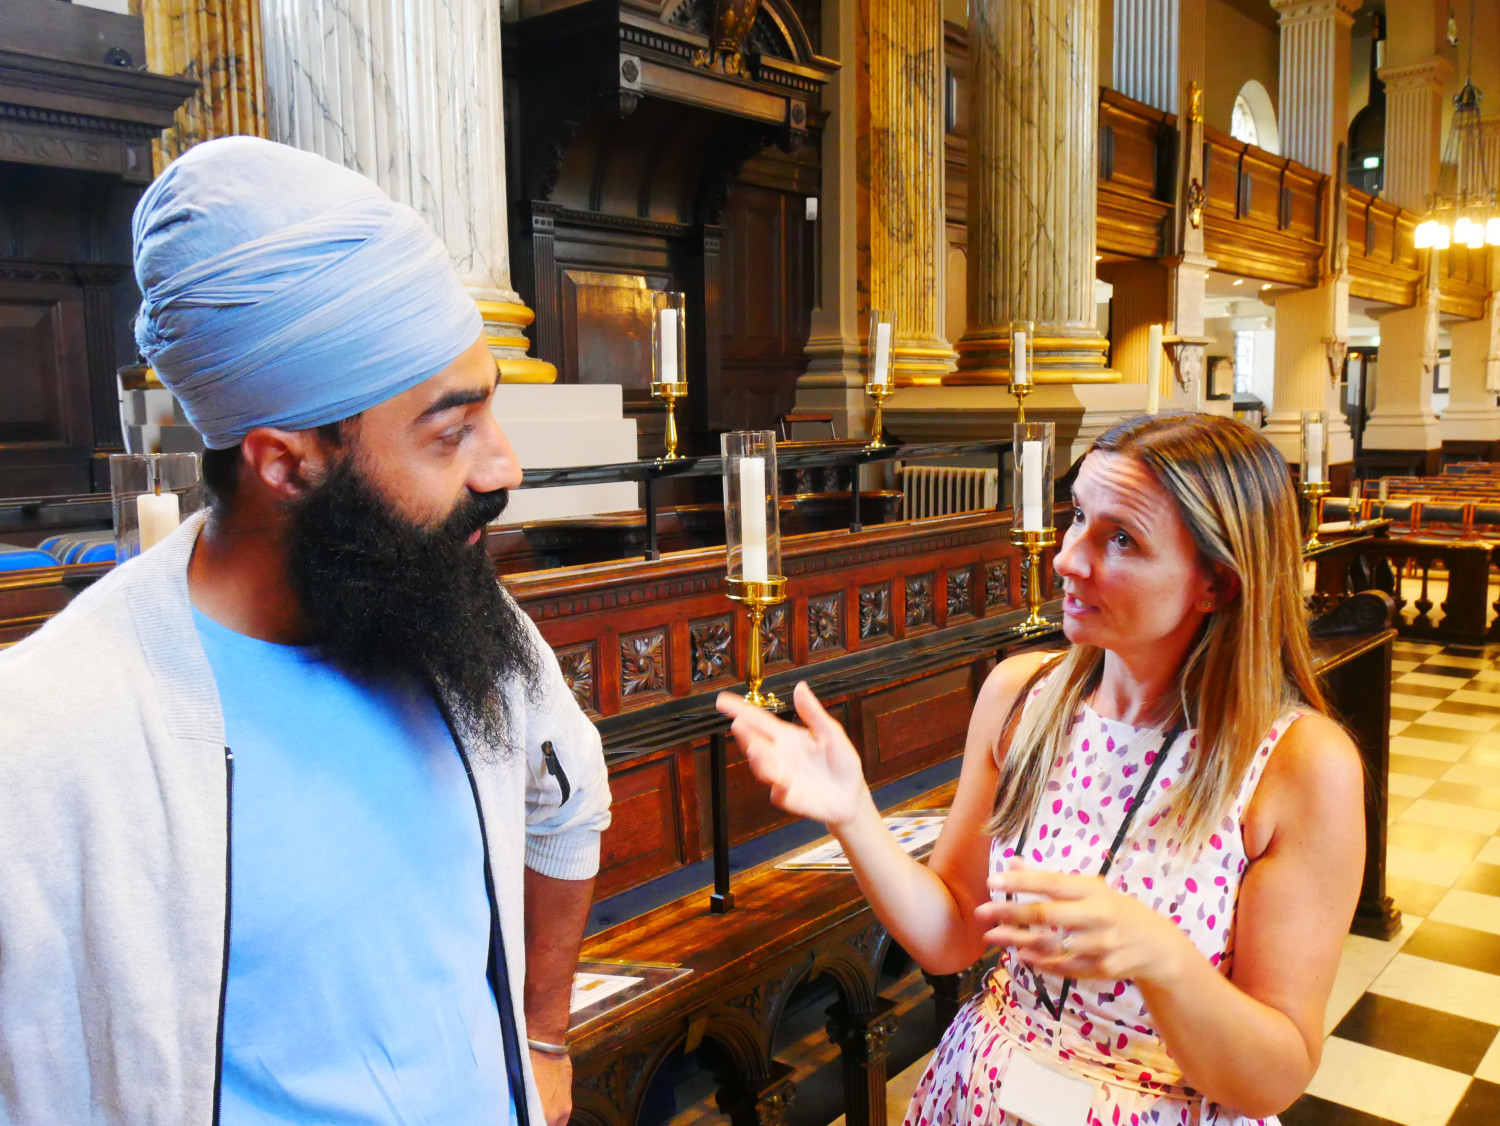 A Sikh man and a Christian woman talking together